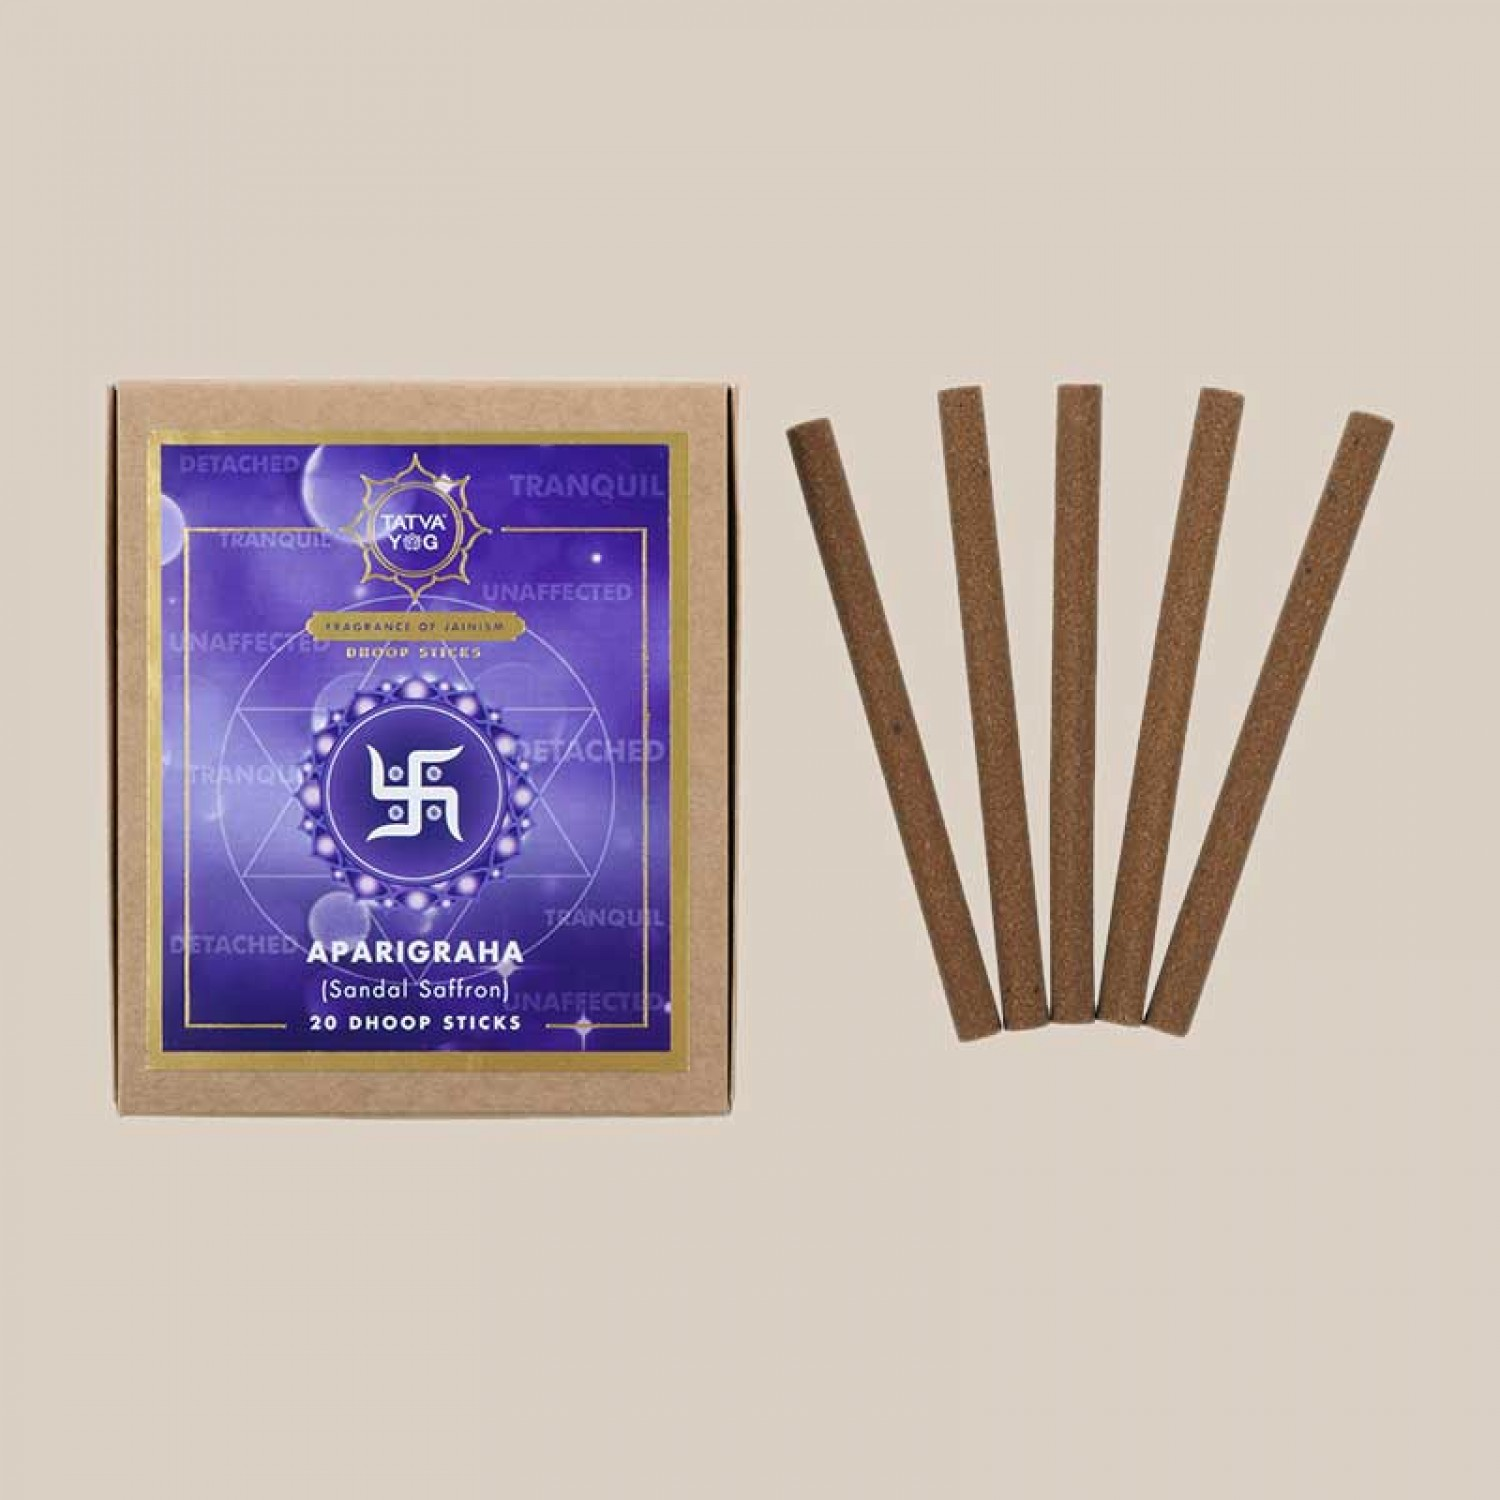 Aparigraha - Dhoop Sticks